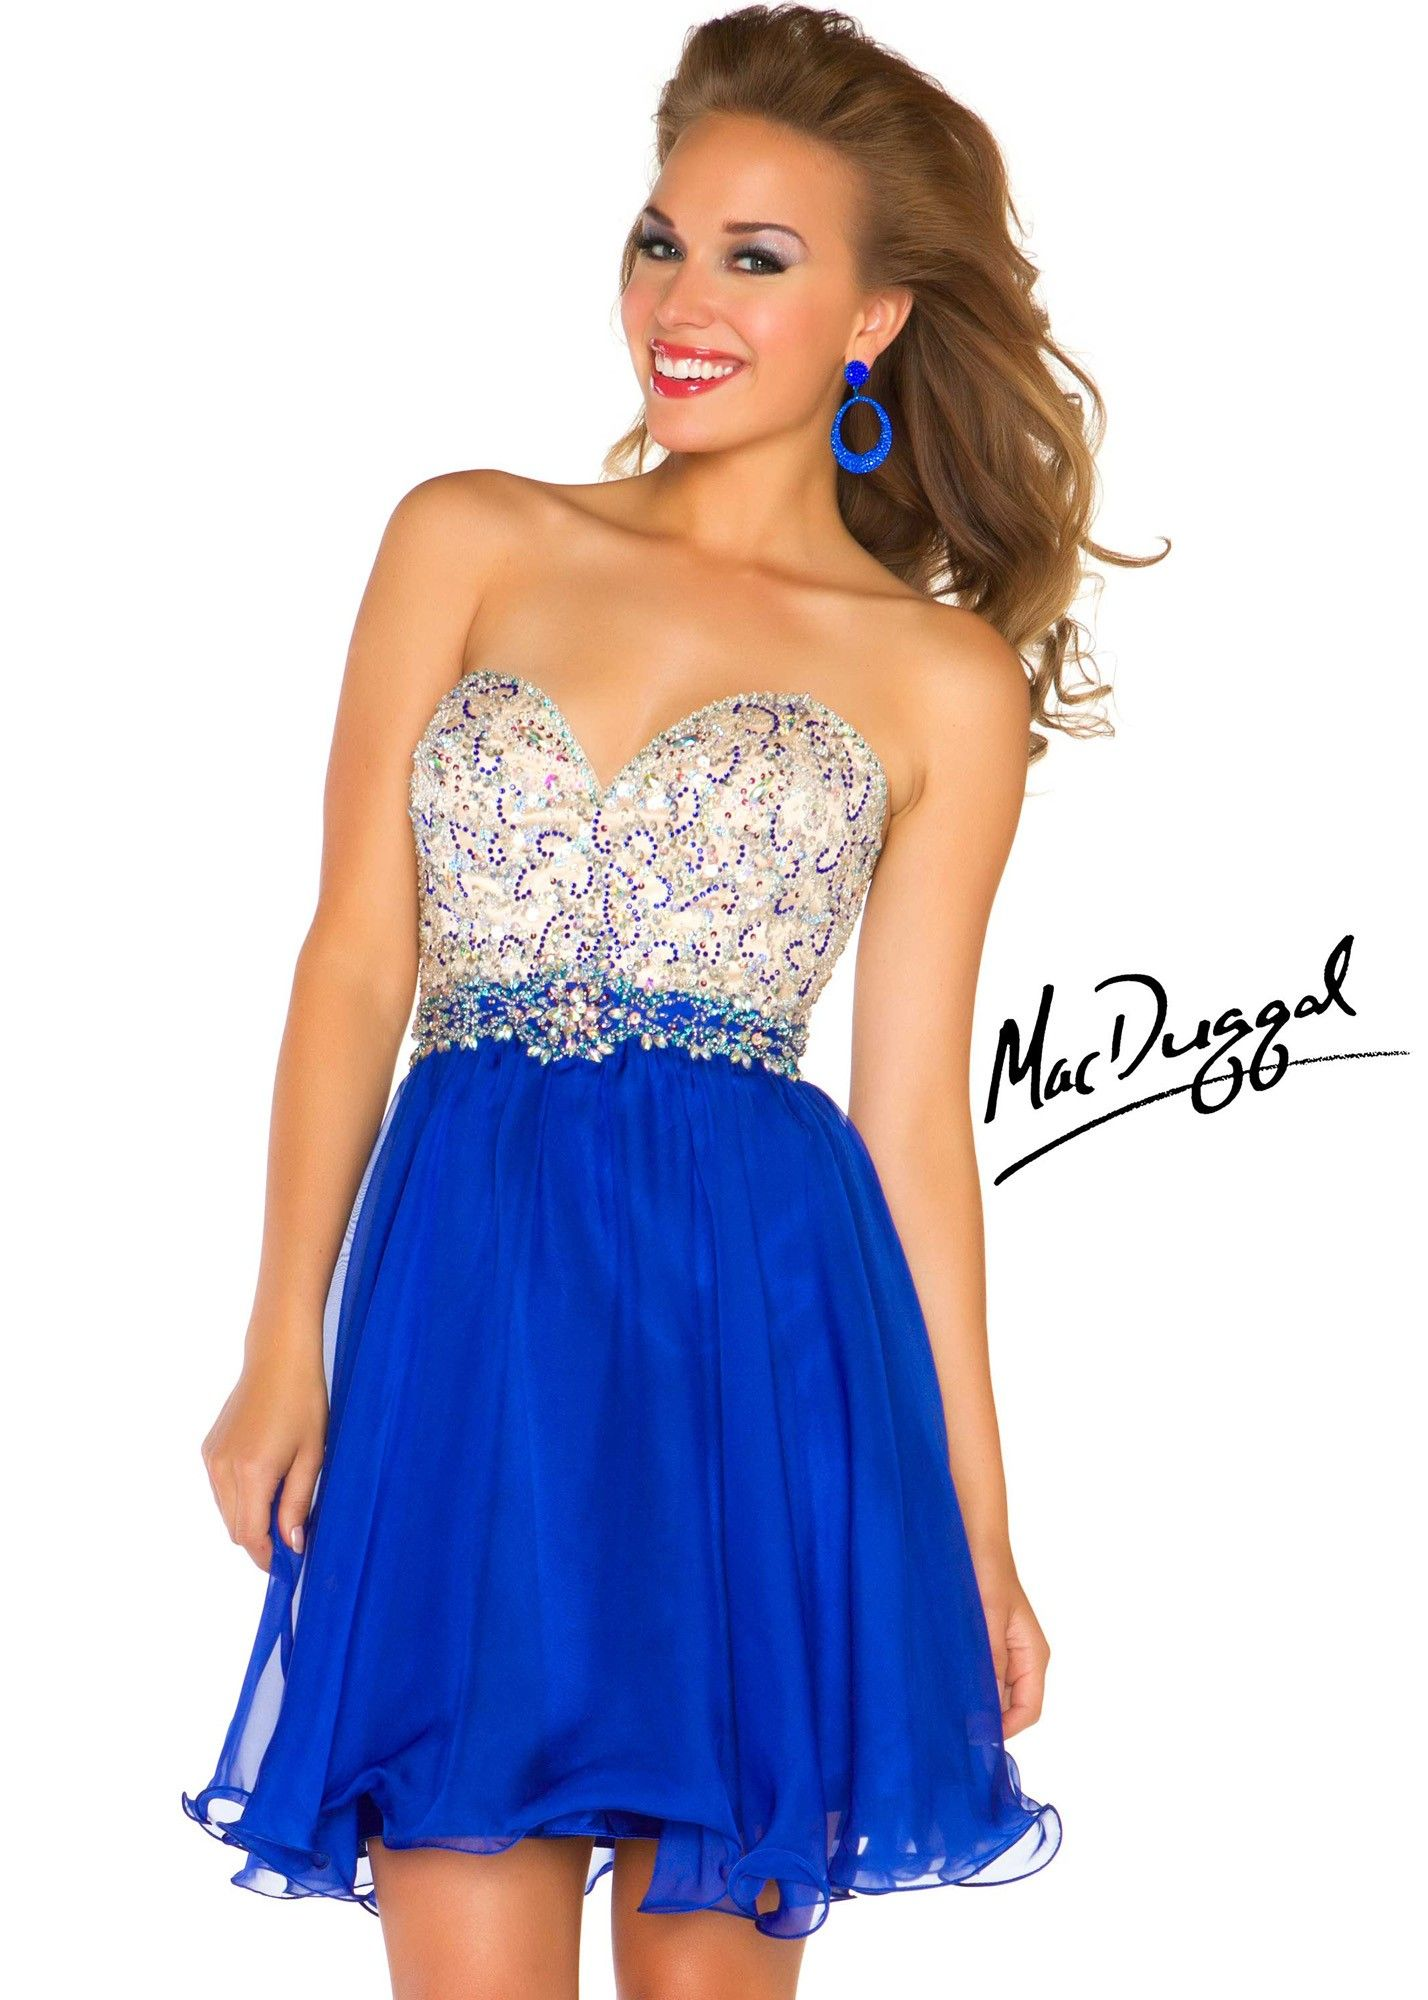 Mac duggal n sparkly short royal blue homecoming dress